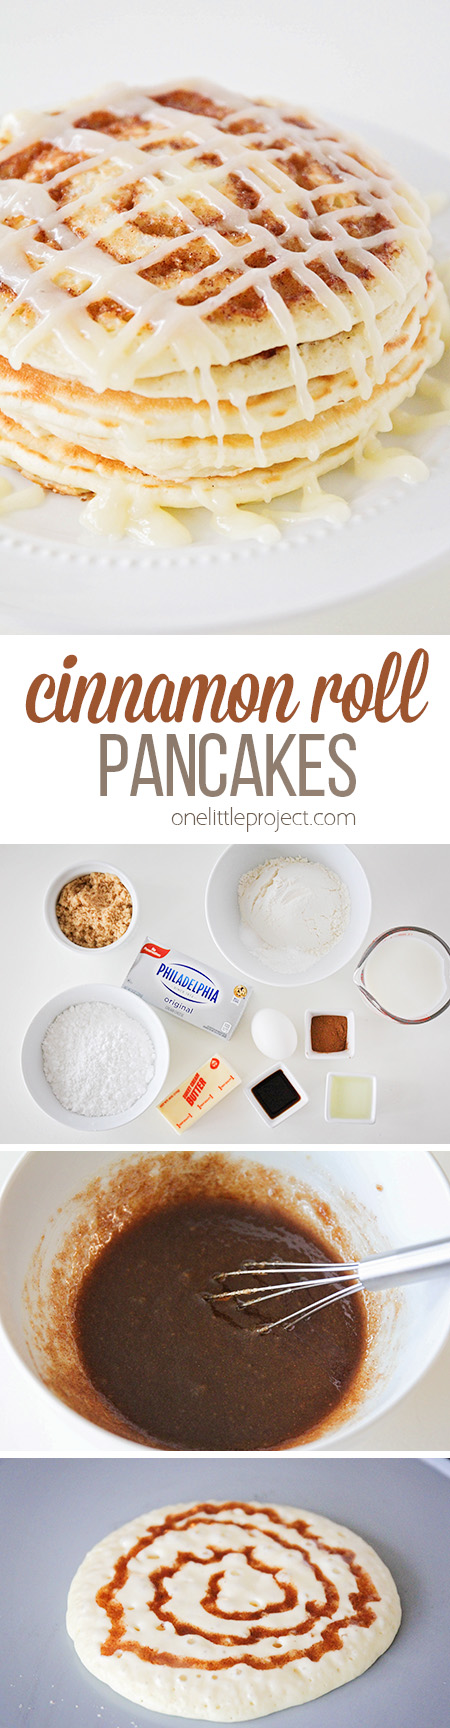 These cinnamon roll pancakes taste just like a cinnamon roll, and are topped with a to-die-for cream cheese glaze. So delicious and easy to make too!